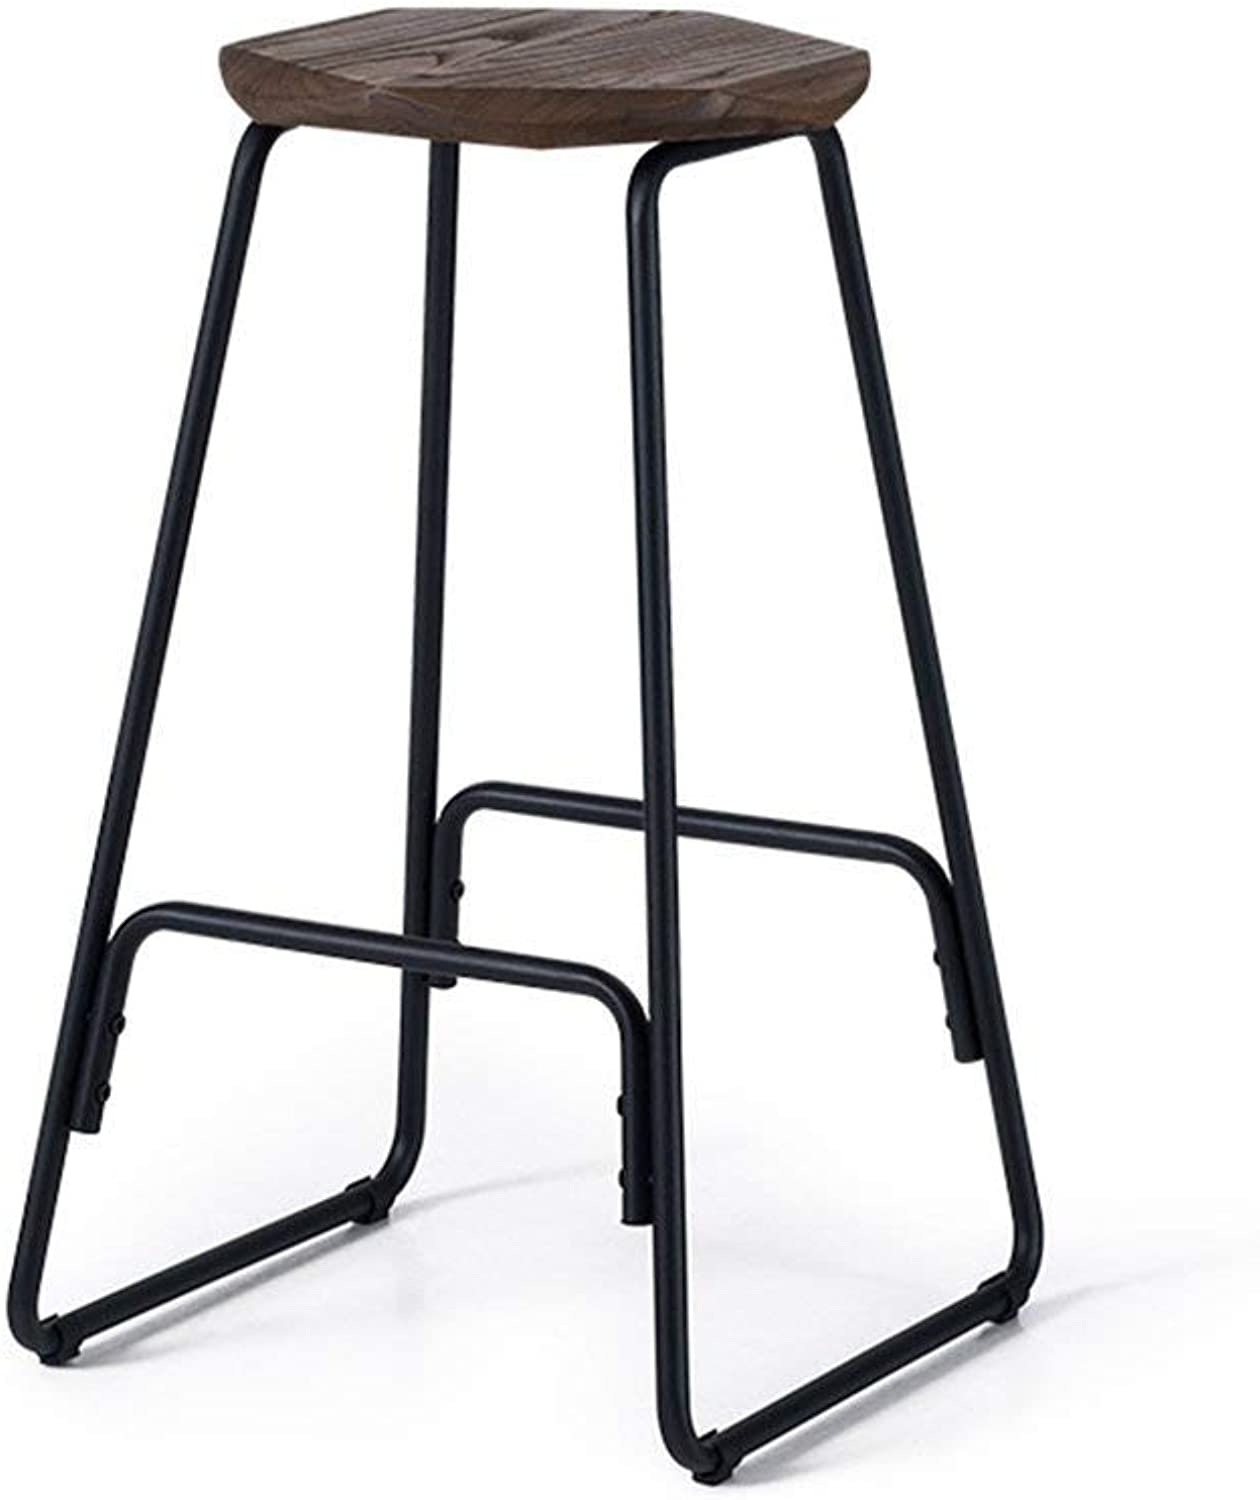 STTS Chair- Bar Stool Retro Fashion Fine Wood + Iron Arts Stool Household High Stool